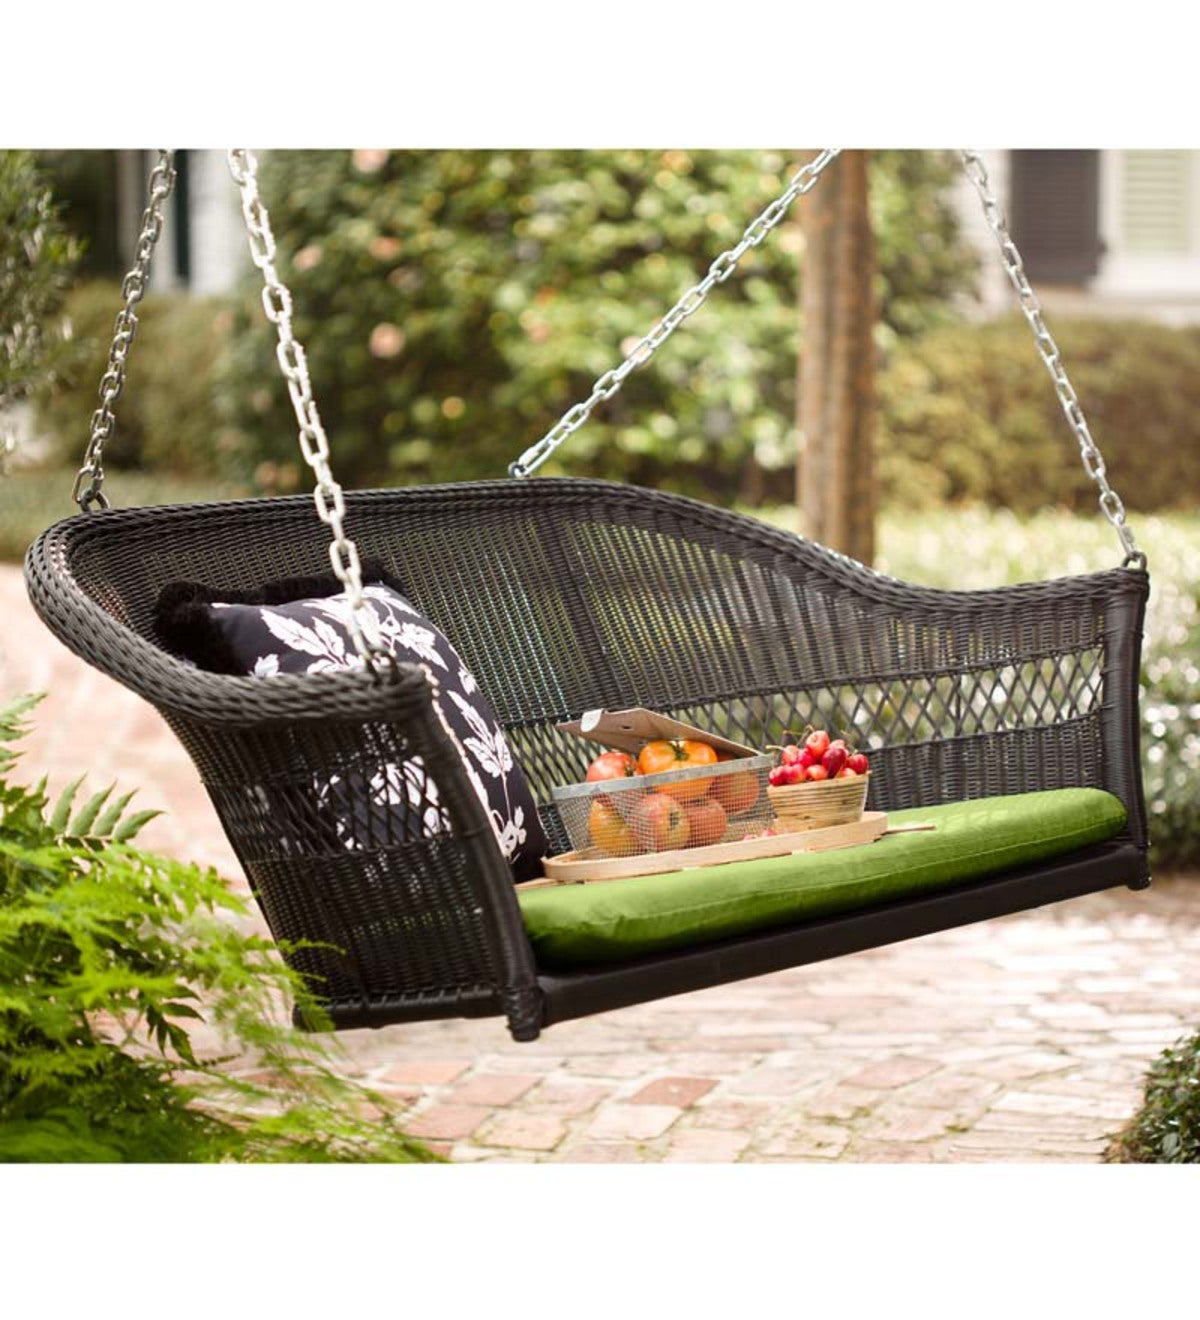 Easy Care Resin Wicker Swing Black